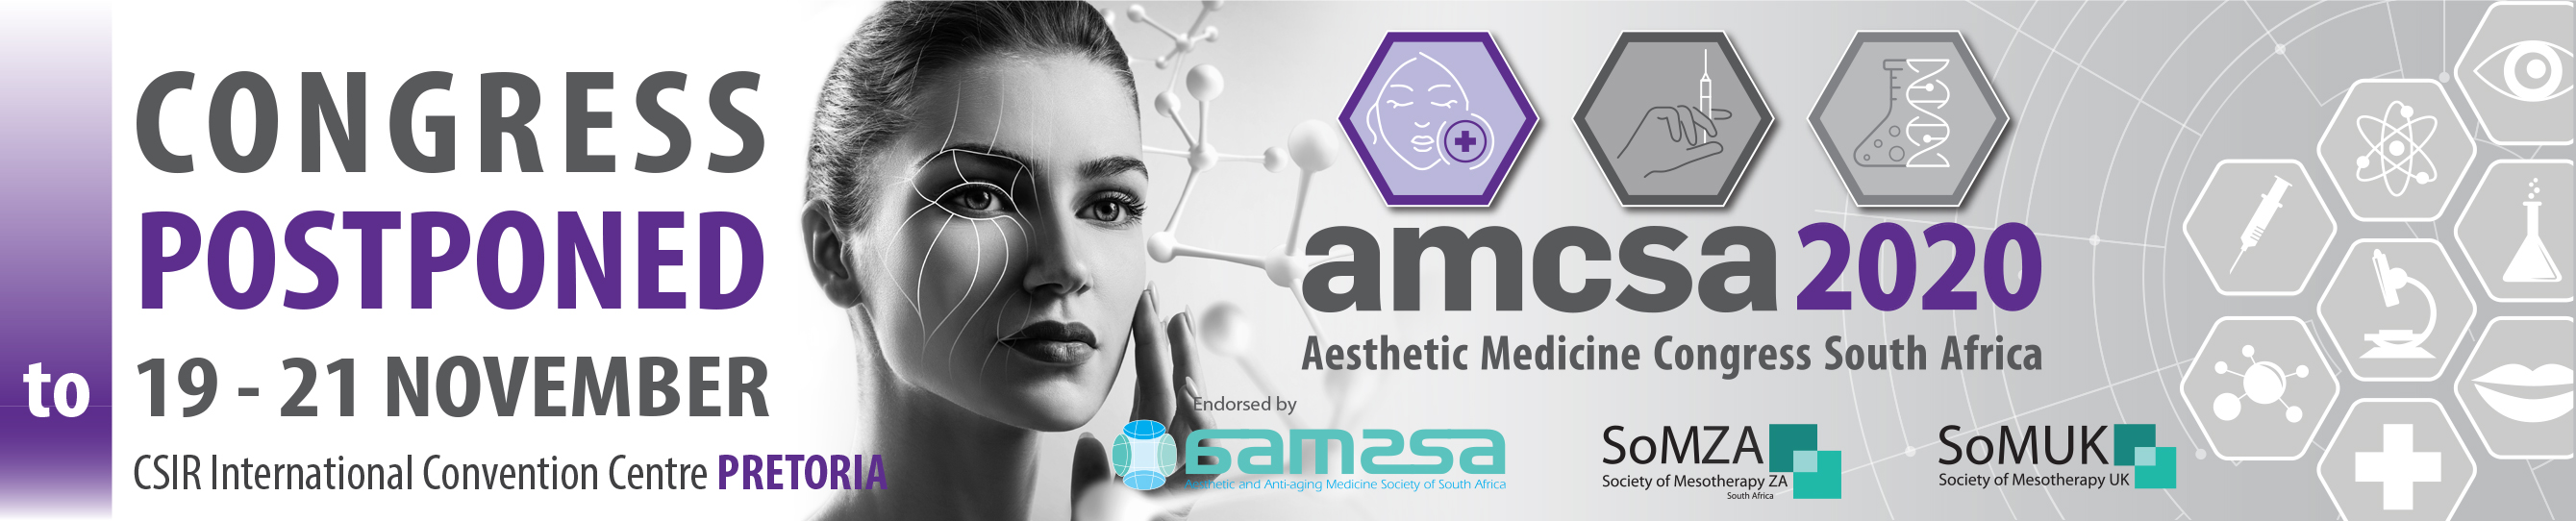 The 15th Aesthetic Medicine Congress of South Africa (AMCSA 2020)